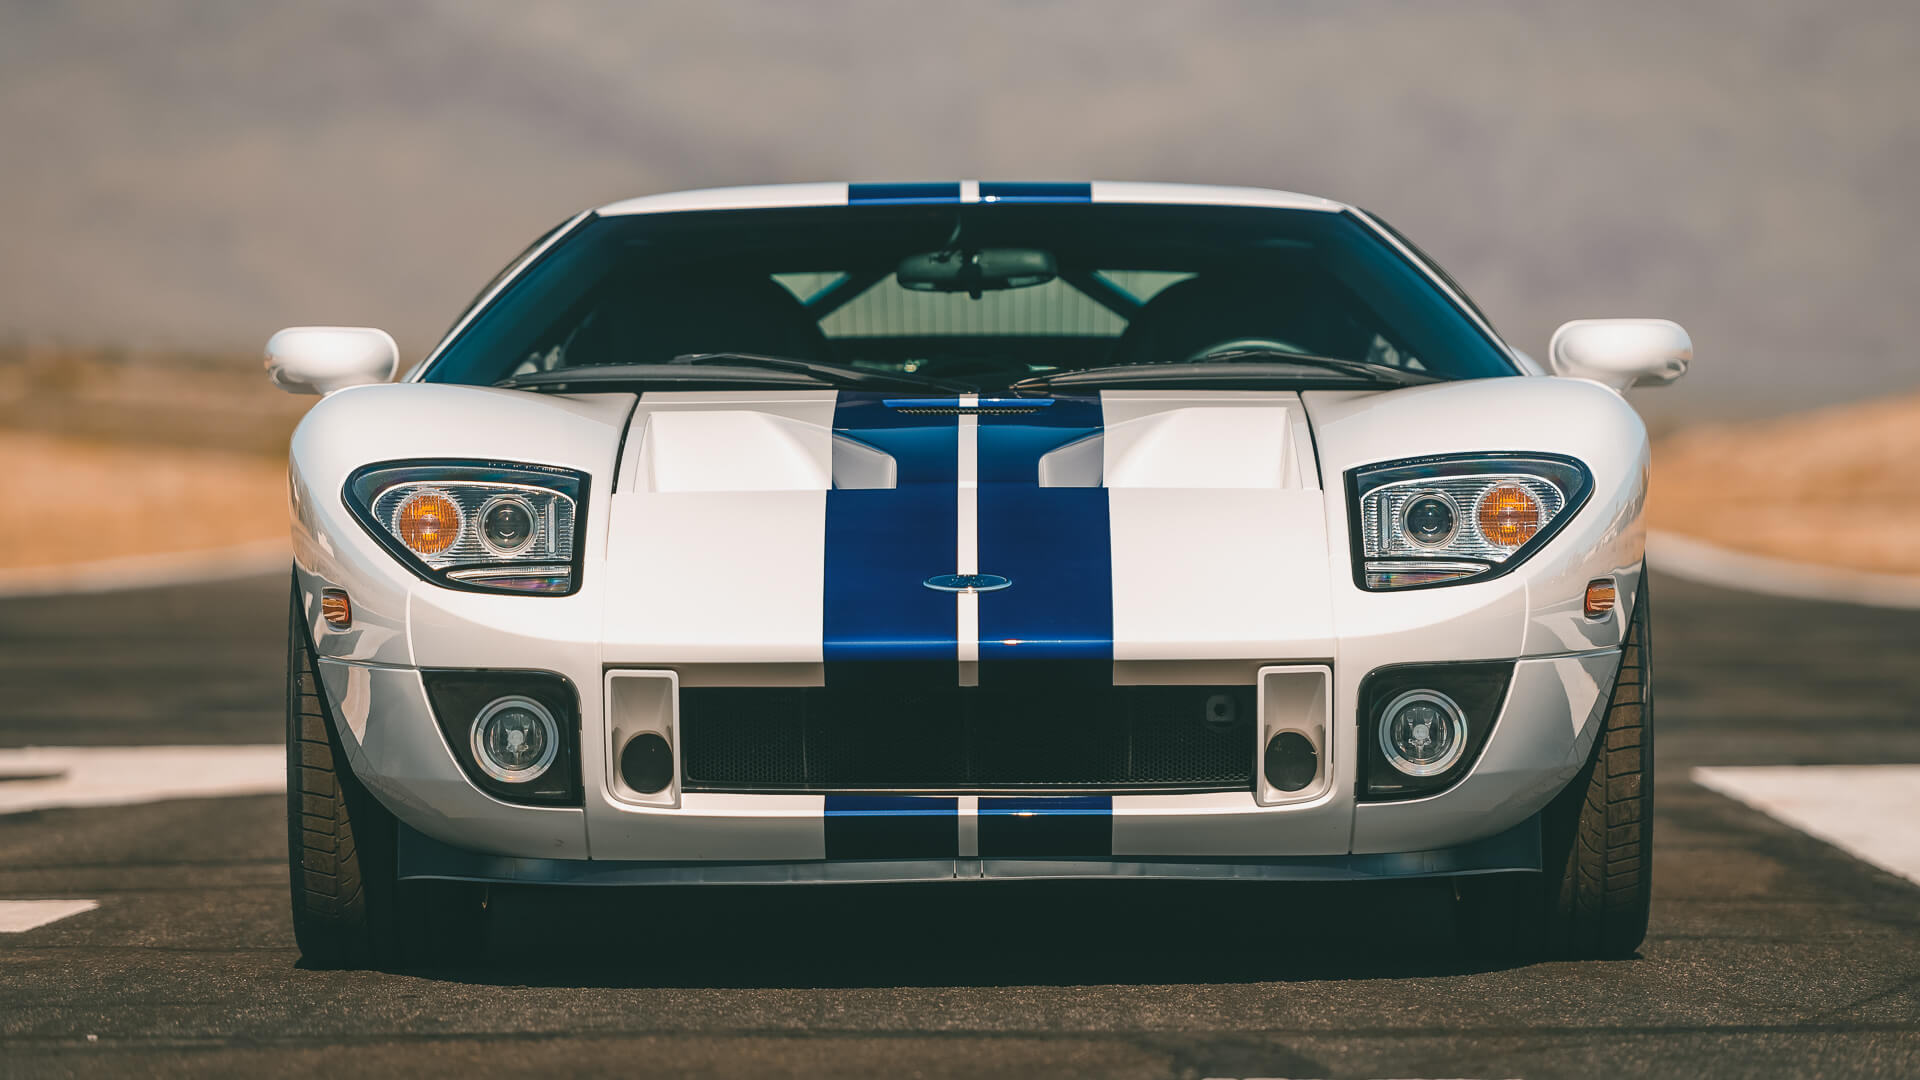 The Rarest Supercars in the World